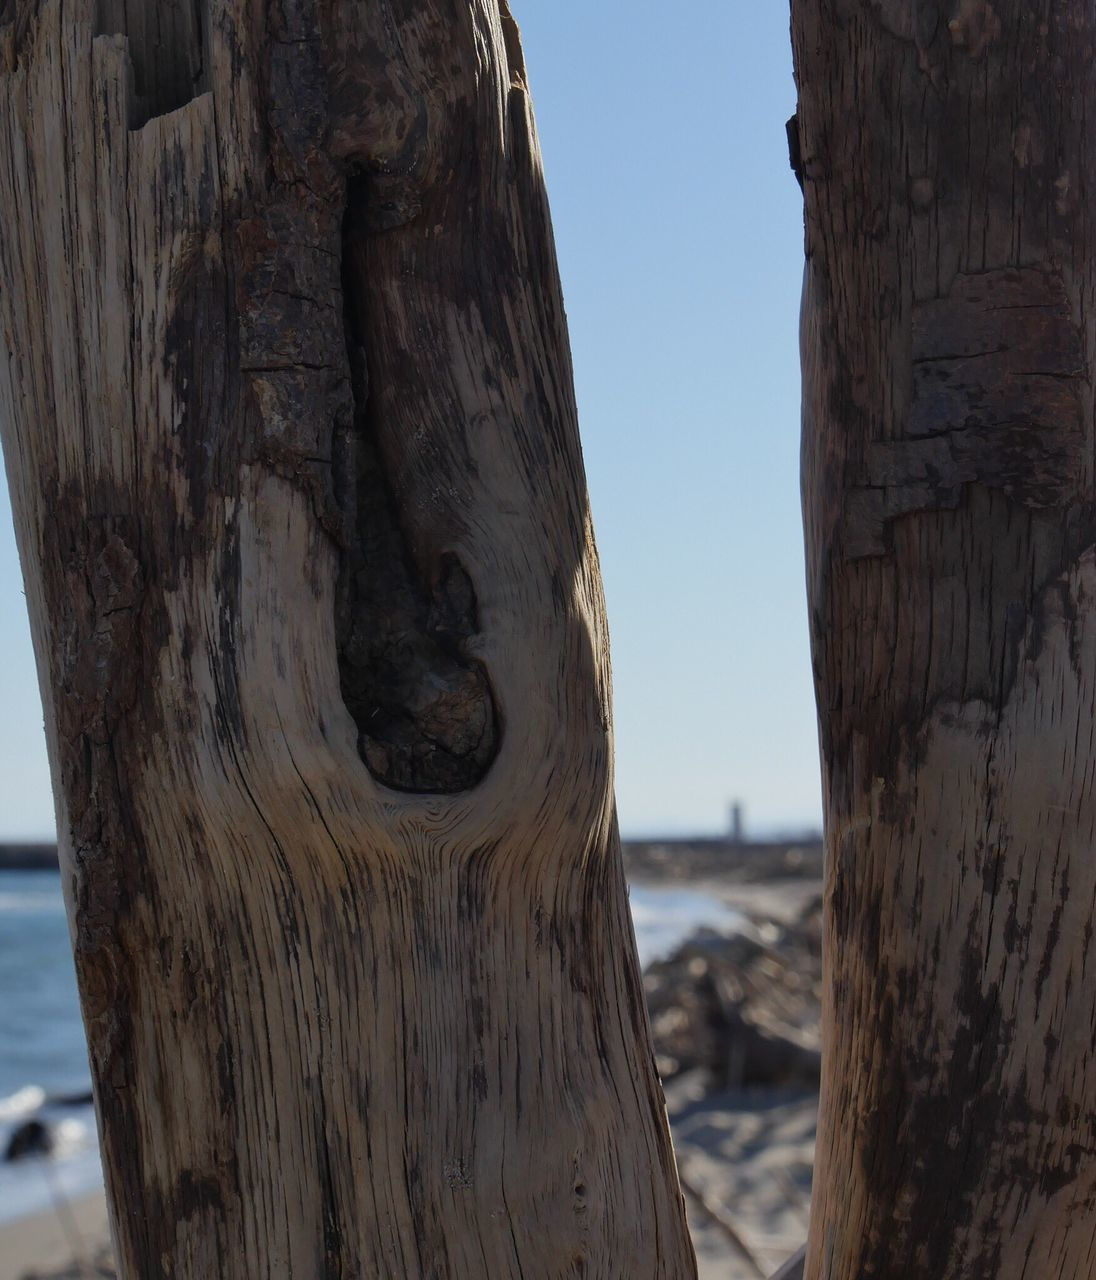 wood - material, focus on foreground, day, no people, outdoors, tree trunk, nature, close-up, water, beauty in nature, sky, tree